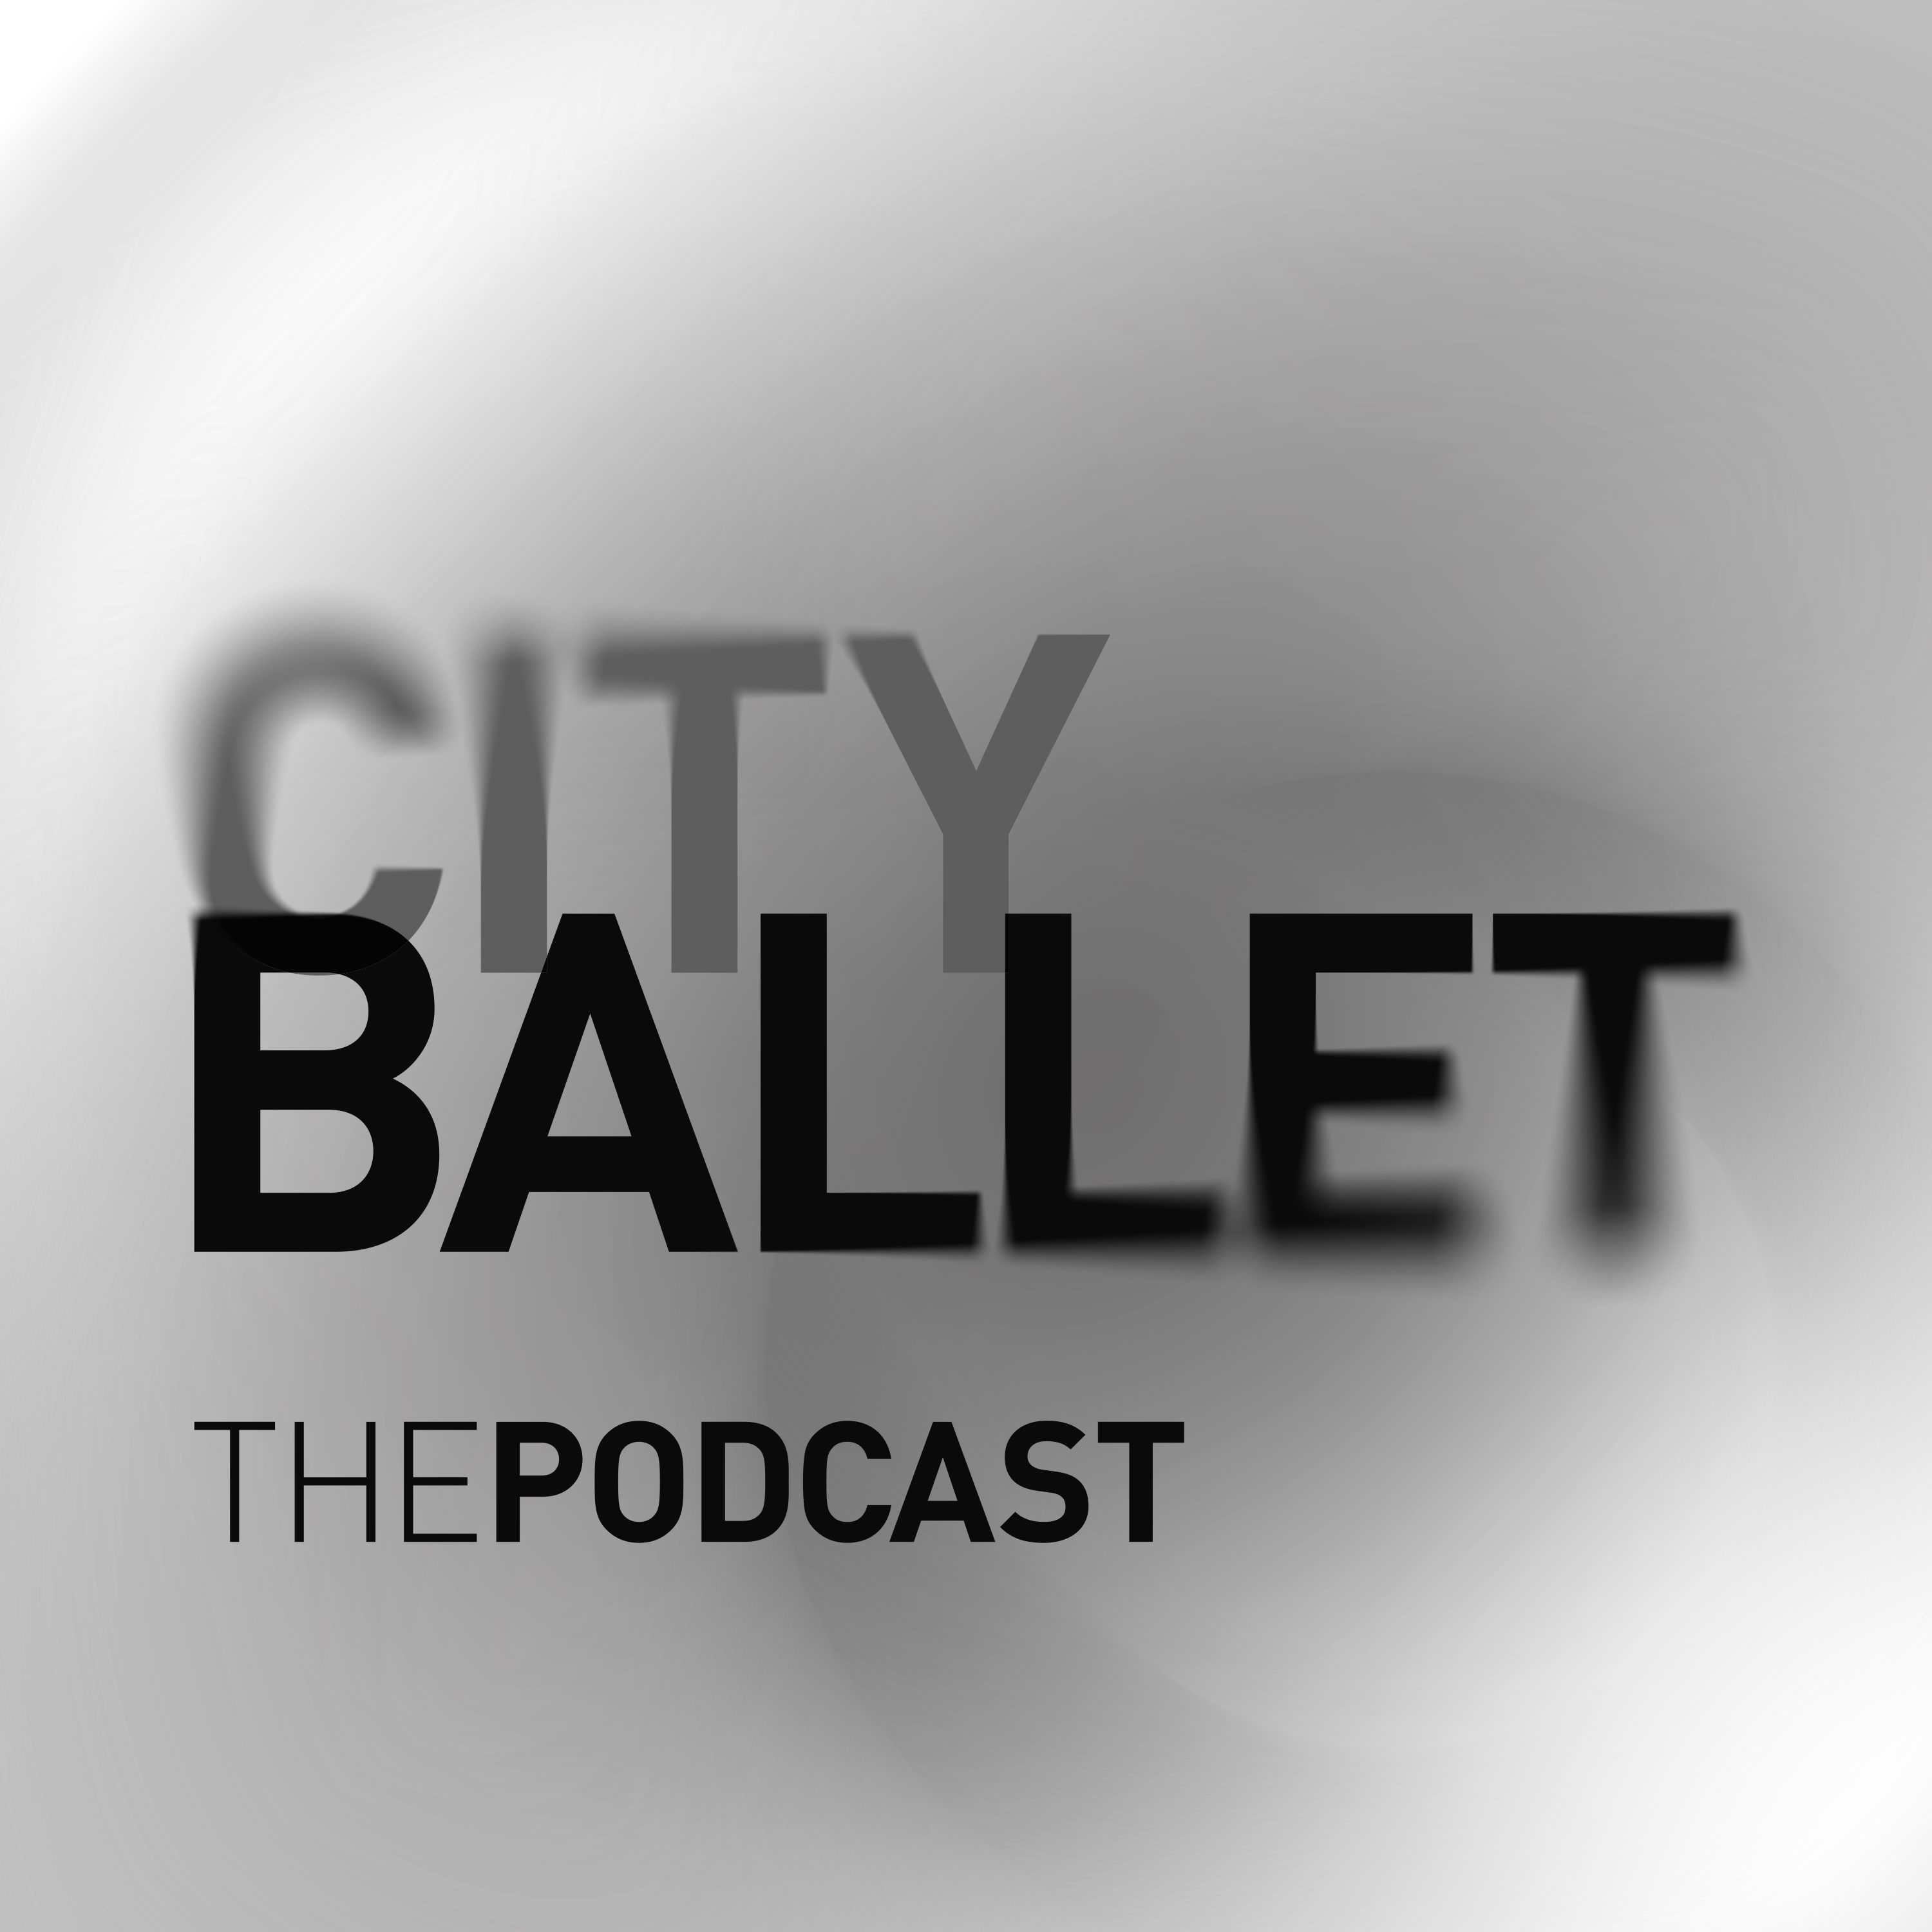 City Ballet The Podcast show art